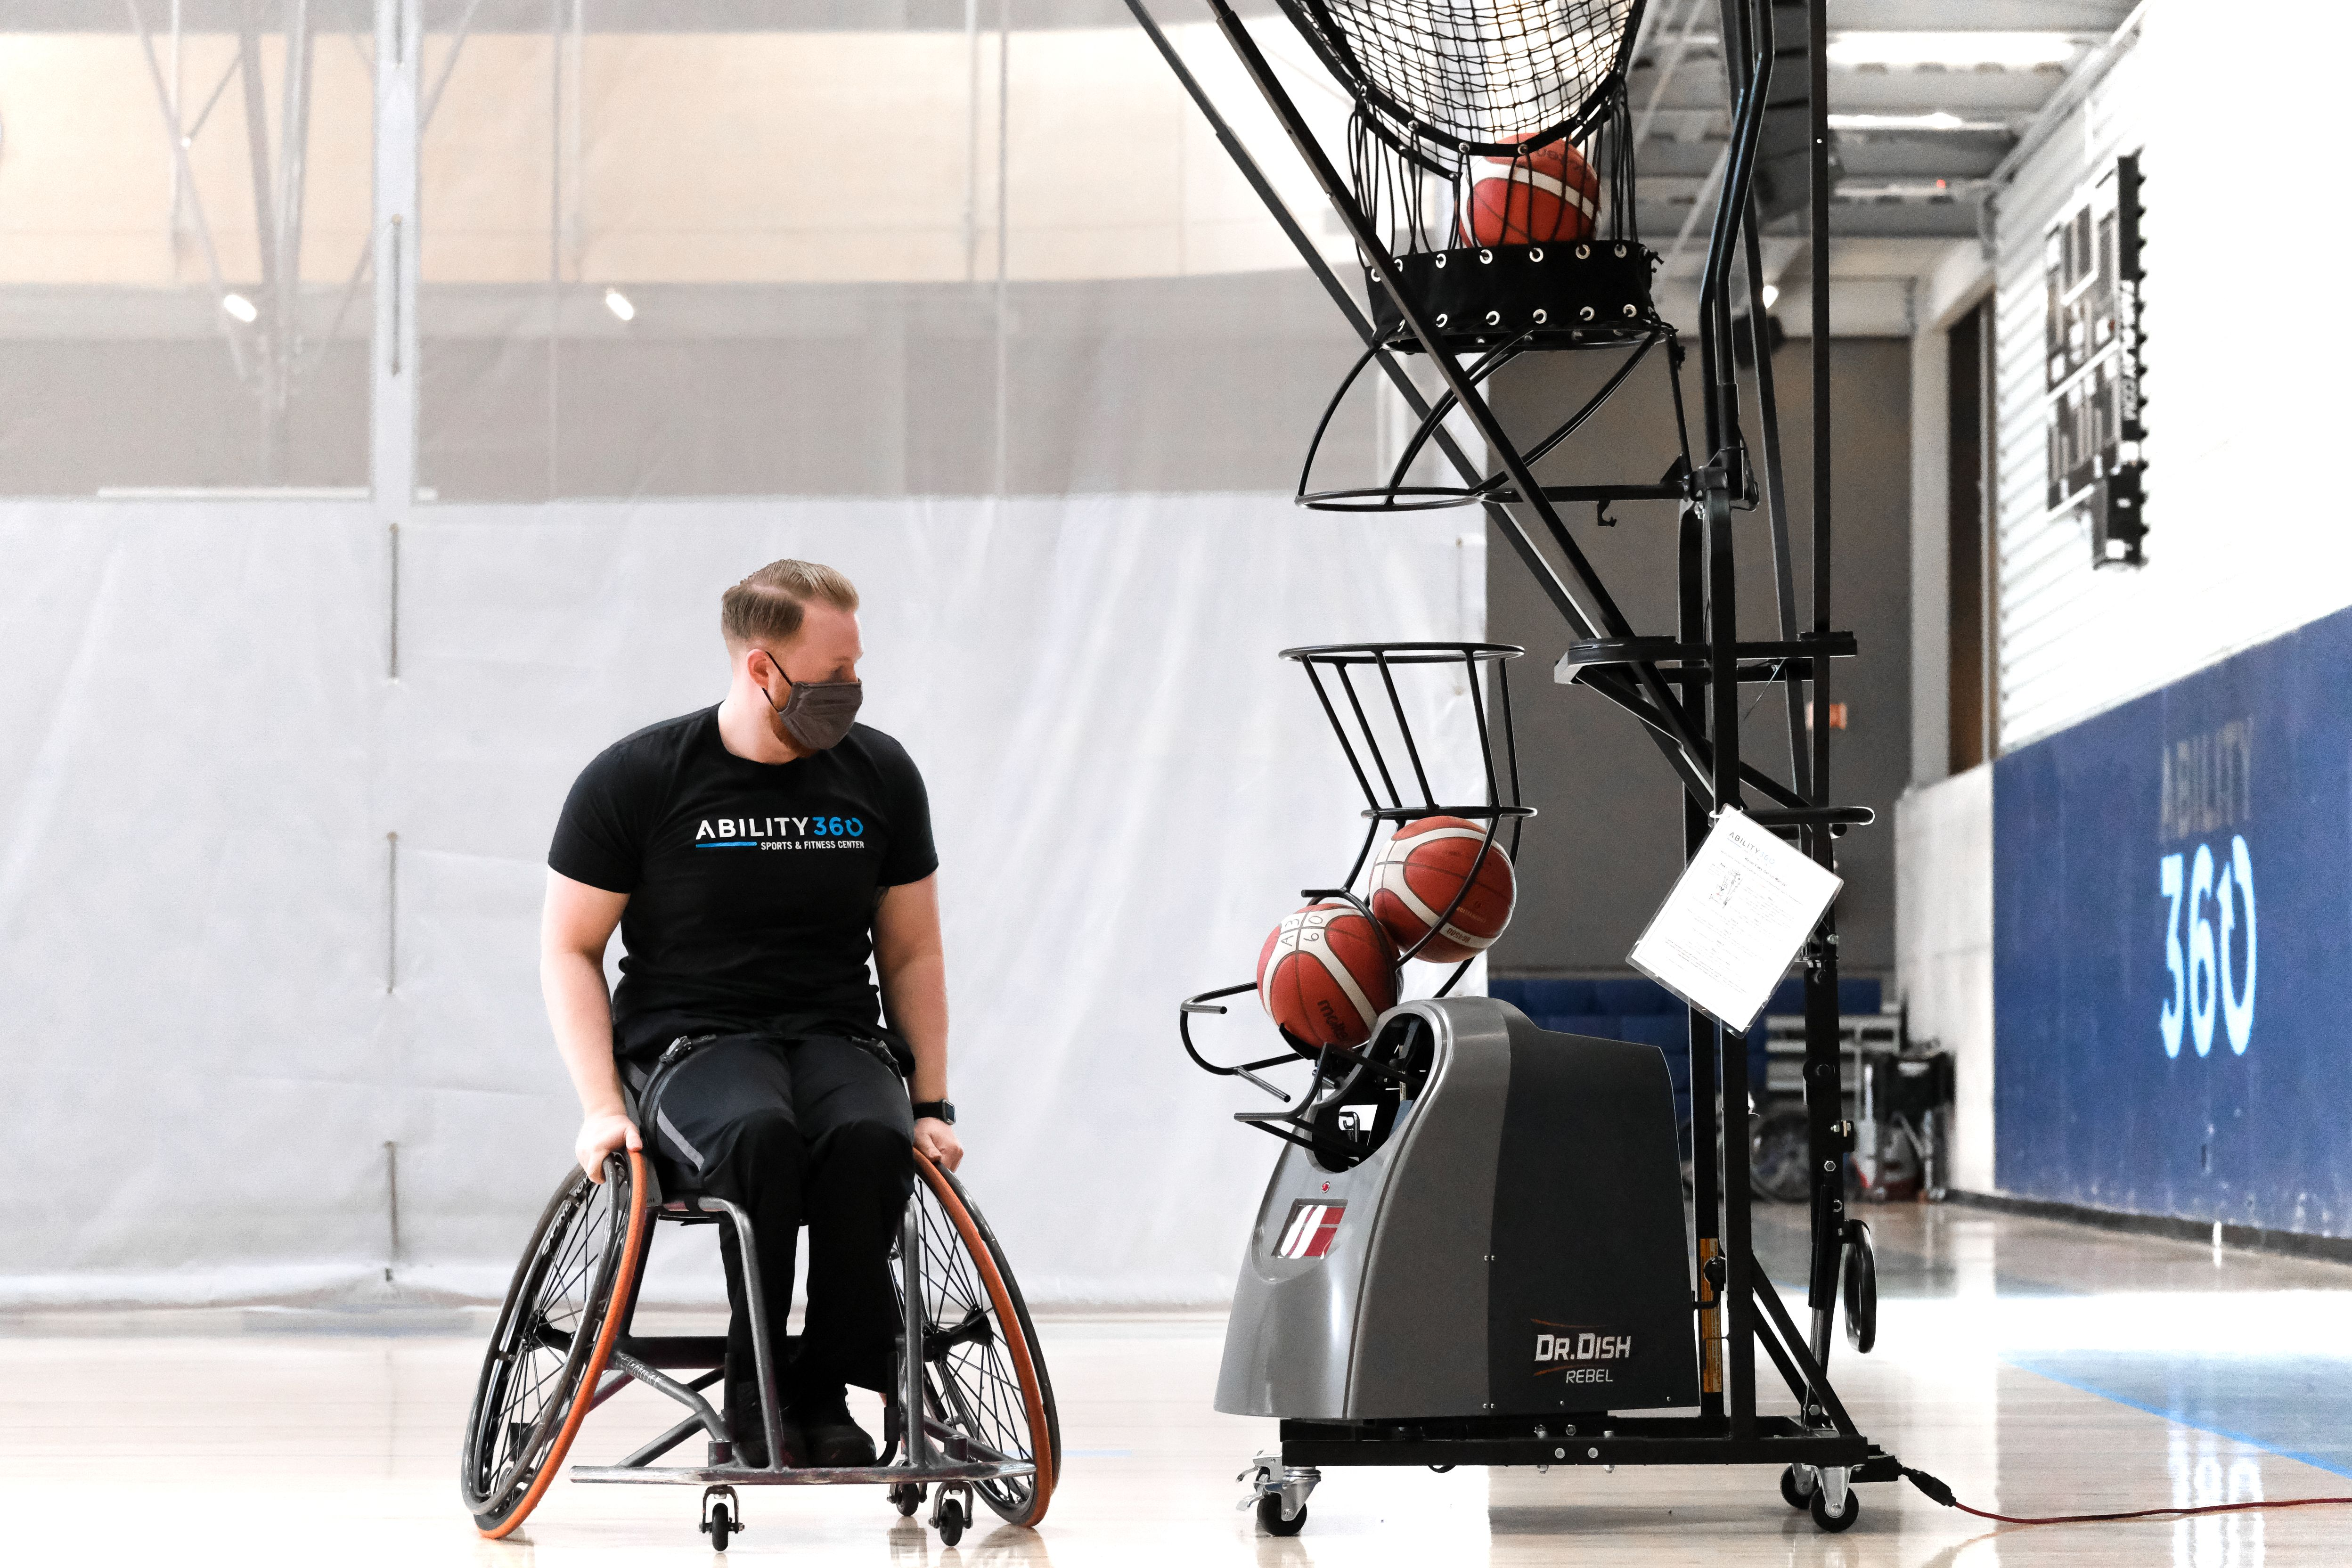 USA's Dominance On the Court Translates to Wheelchair Basketball